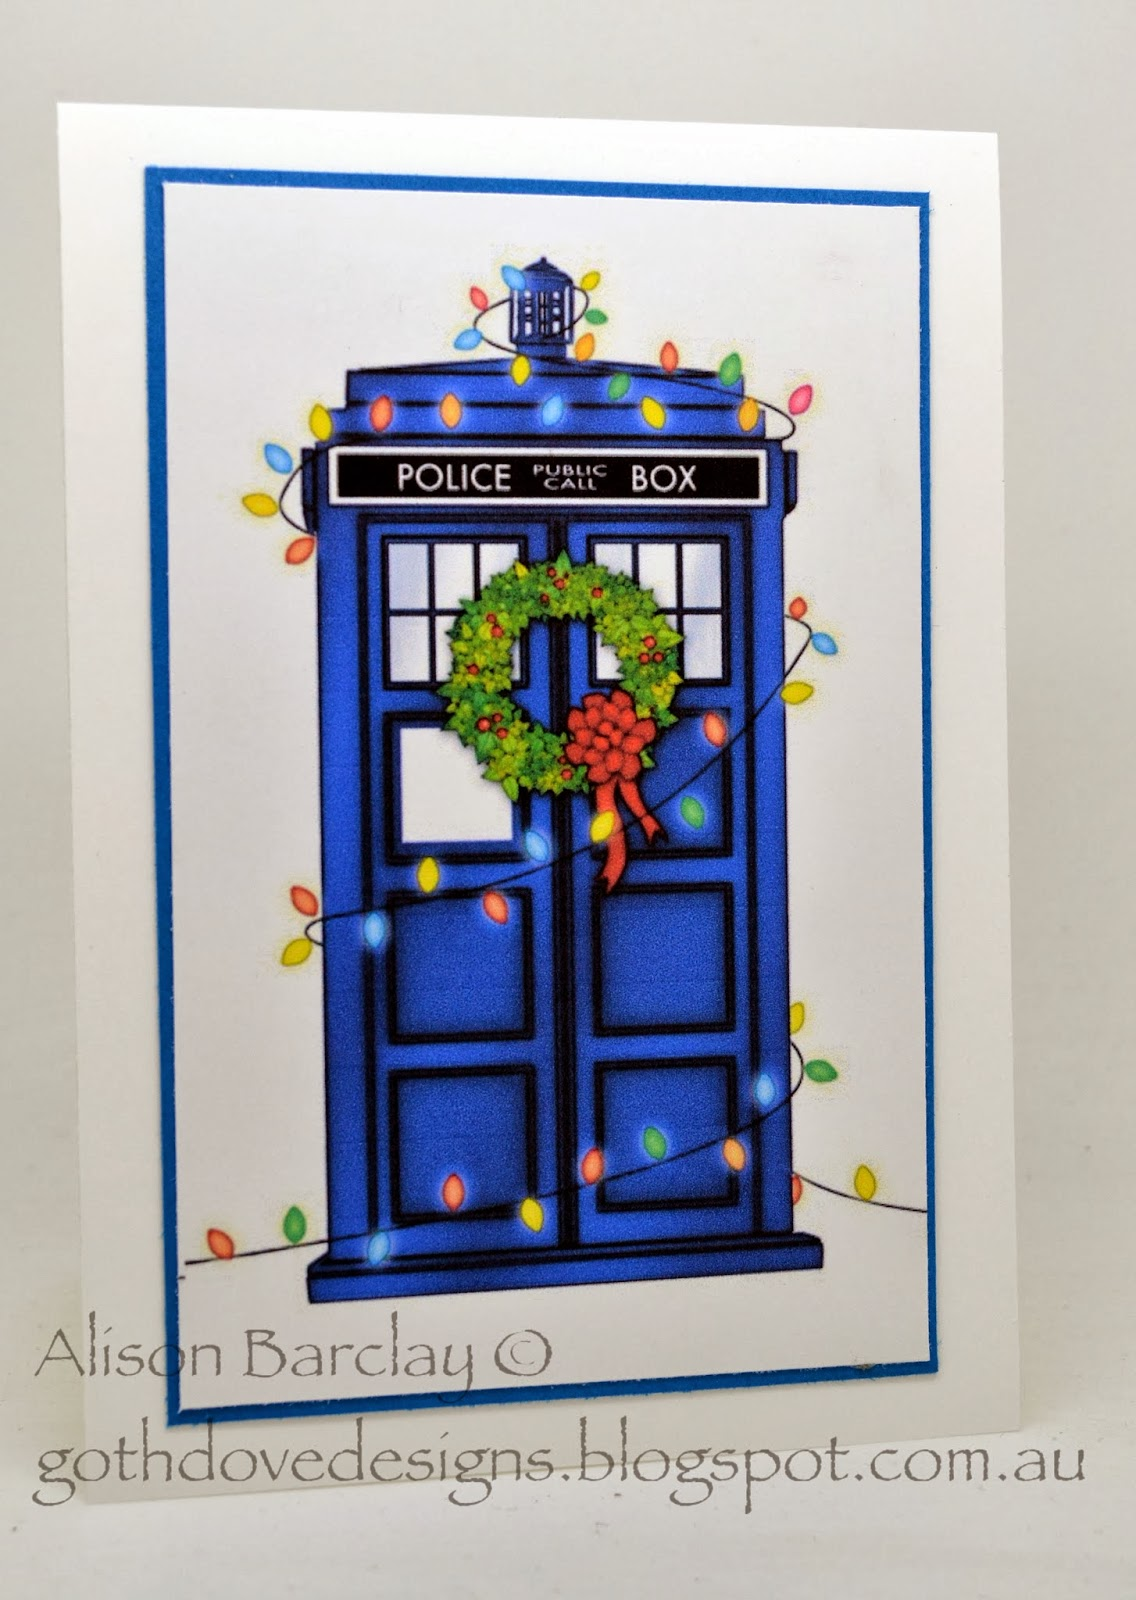 Doctor Who Christmas Cards.Gothdove Designs Stampin Up Australia Stampin Up Australia